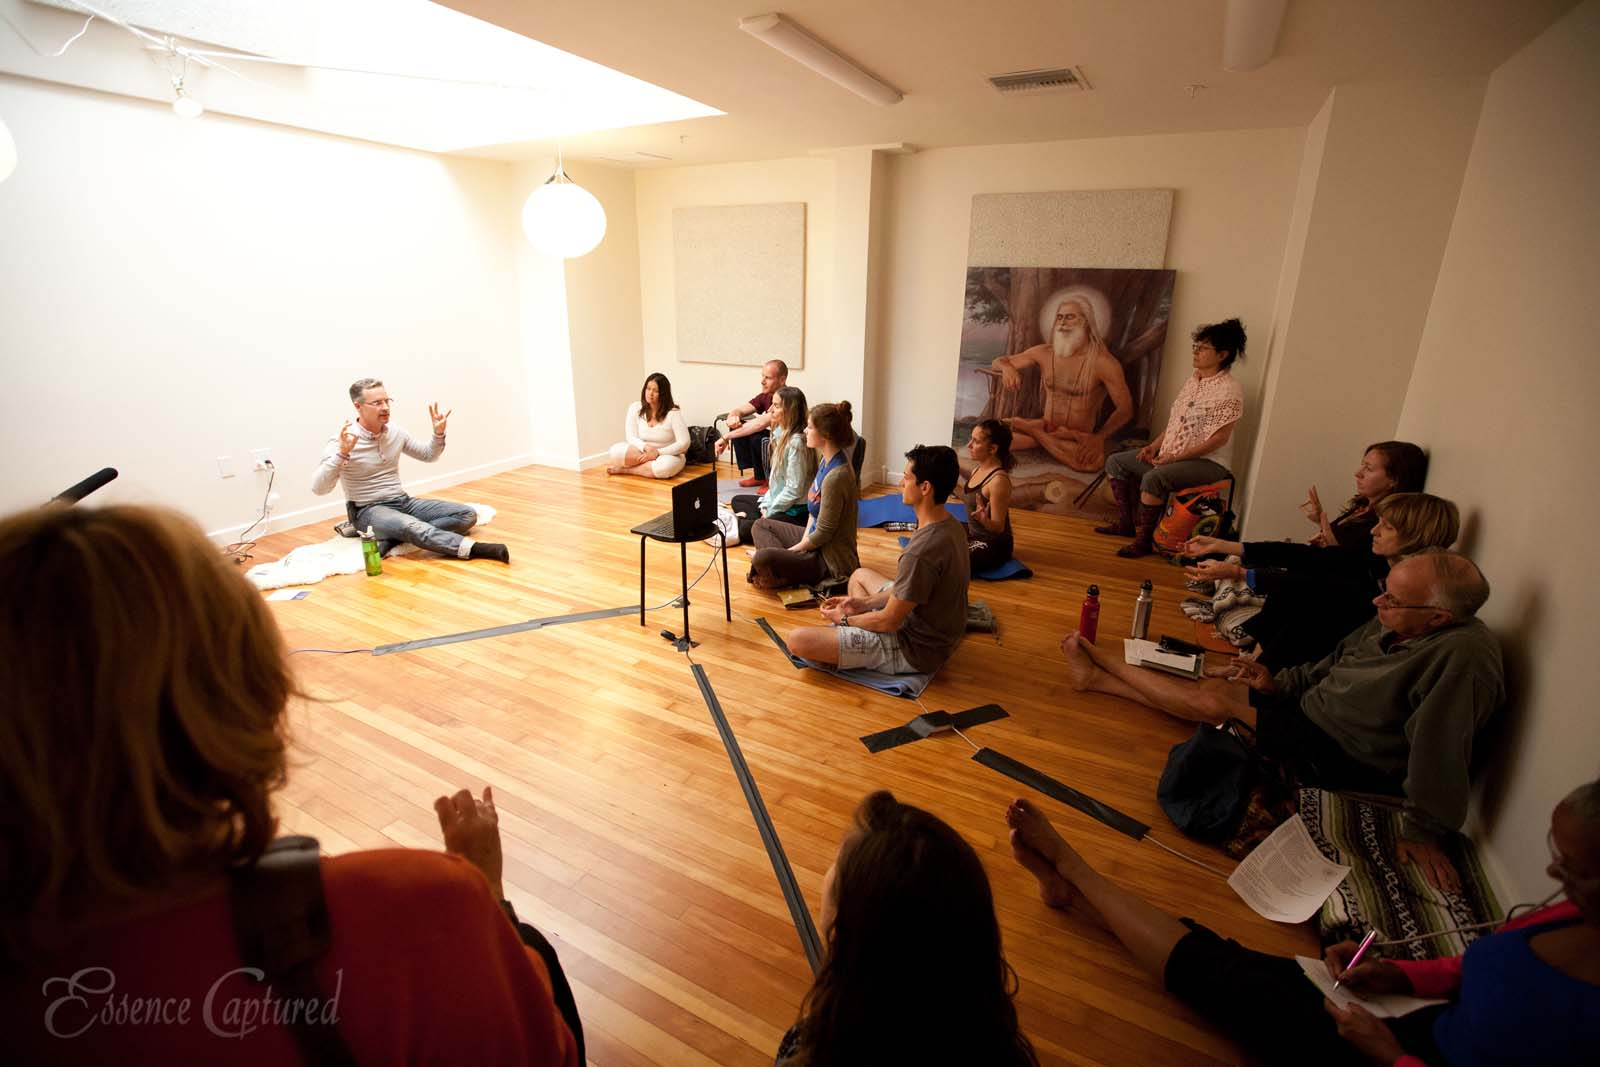 instructor demonstrating mudras to students in yoga studio at Naam Yoga L.A.